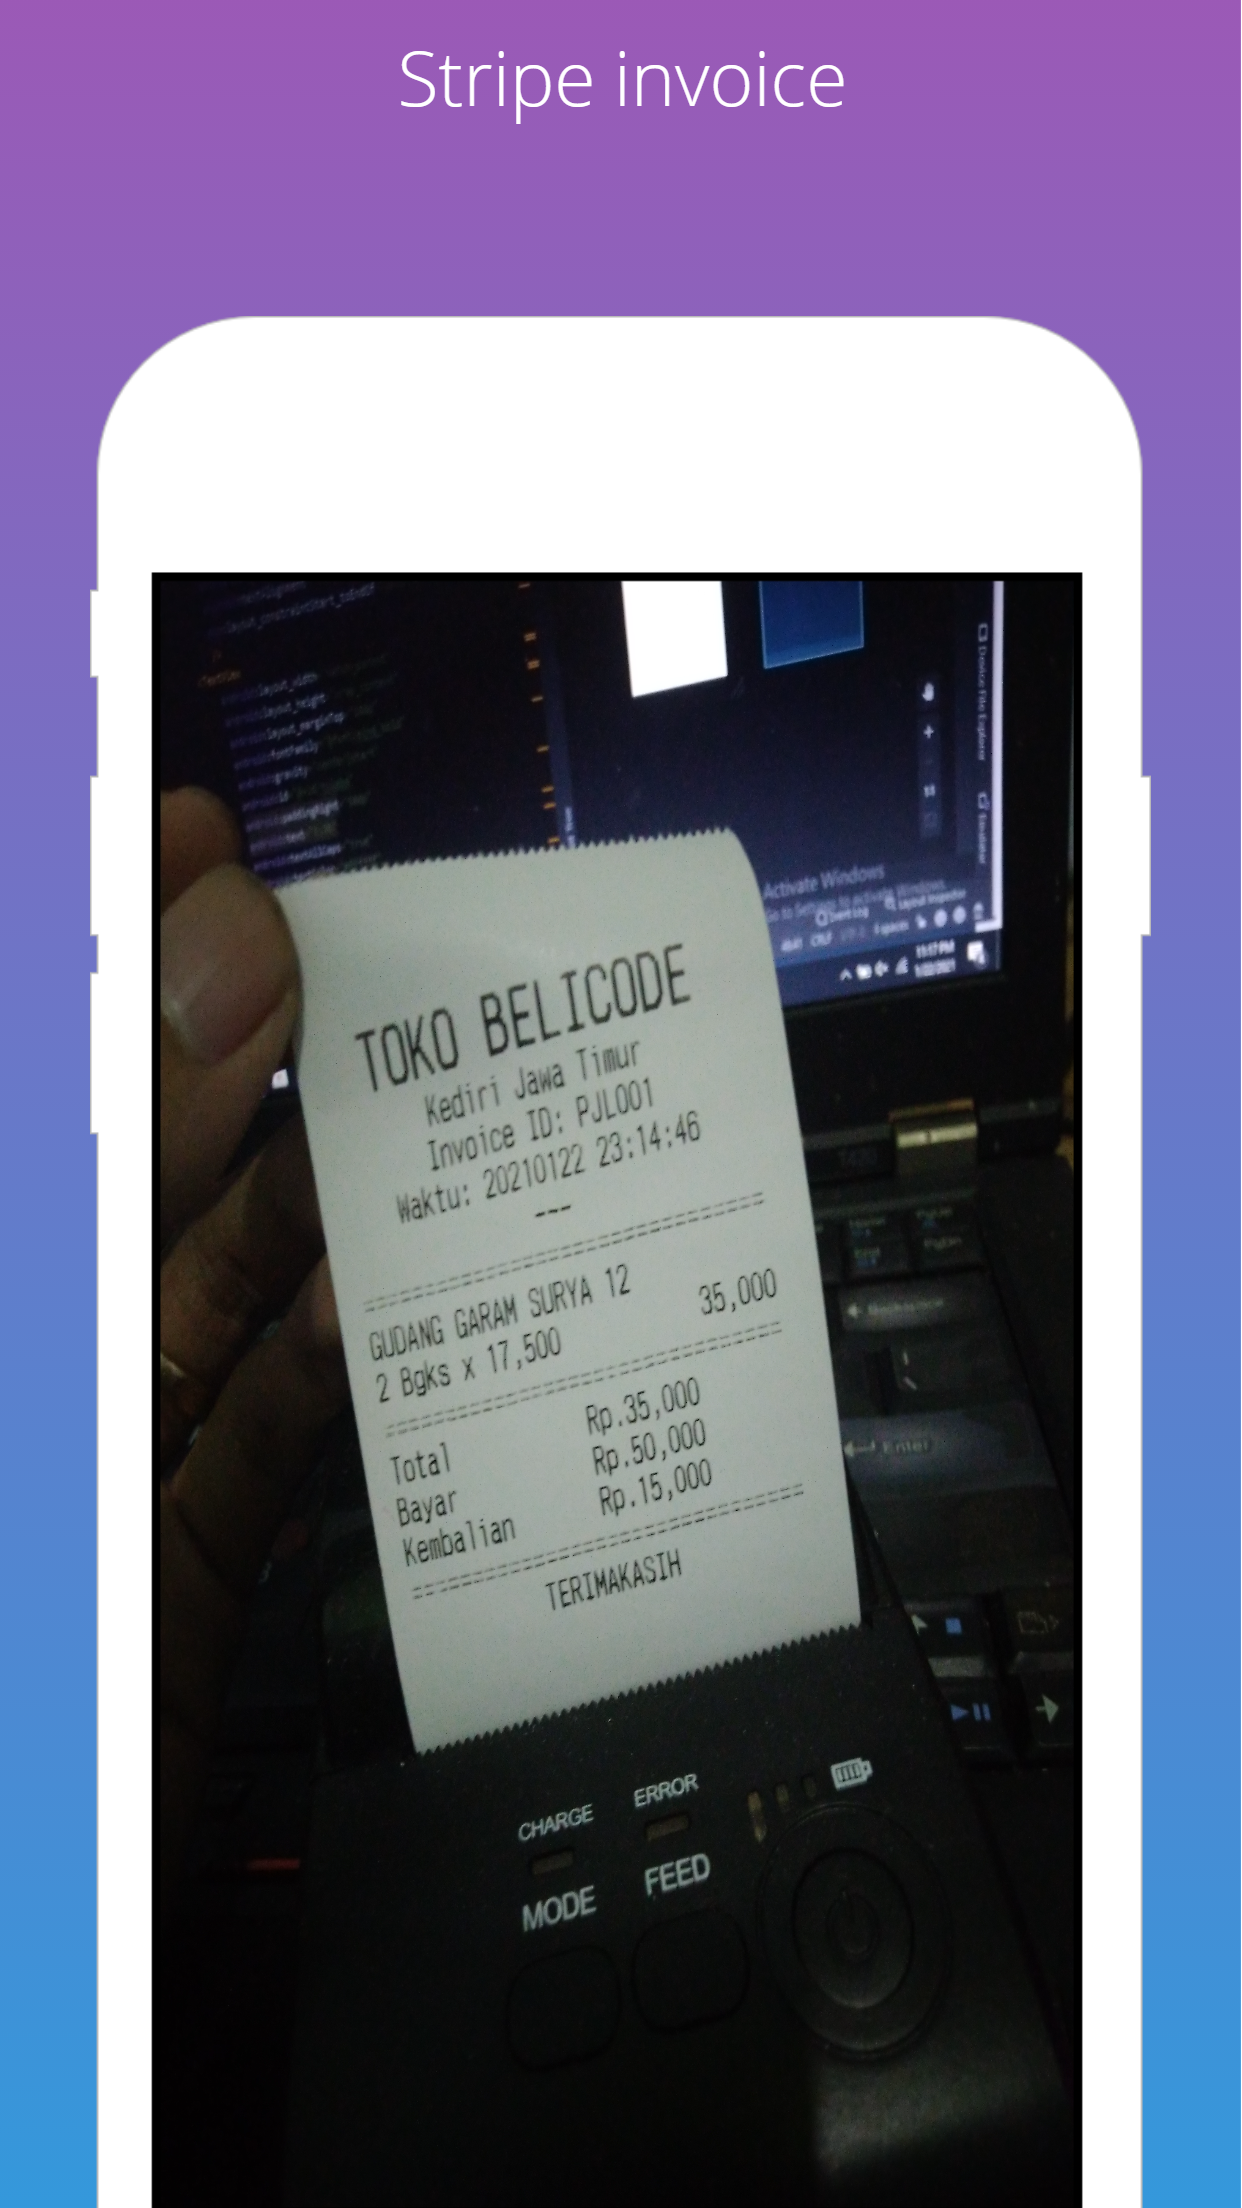 POS Android